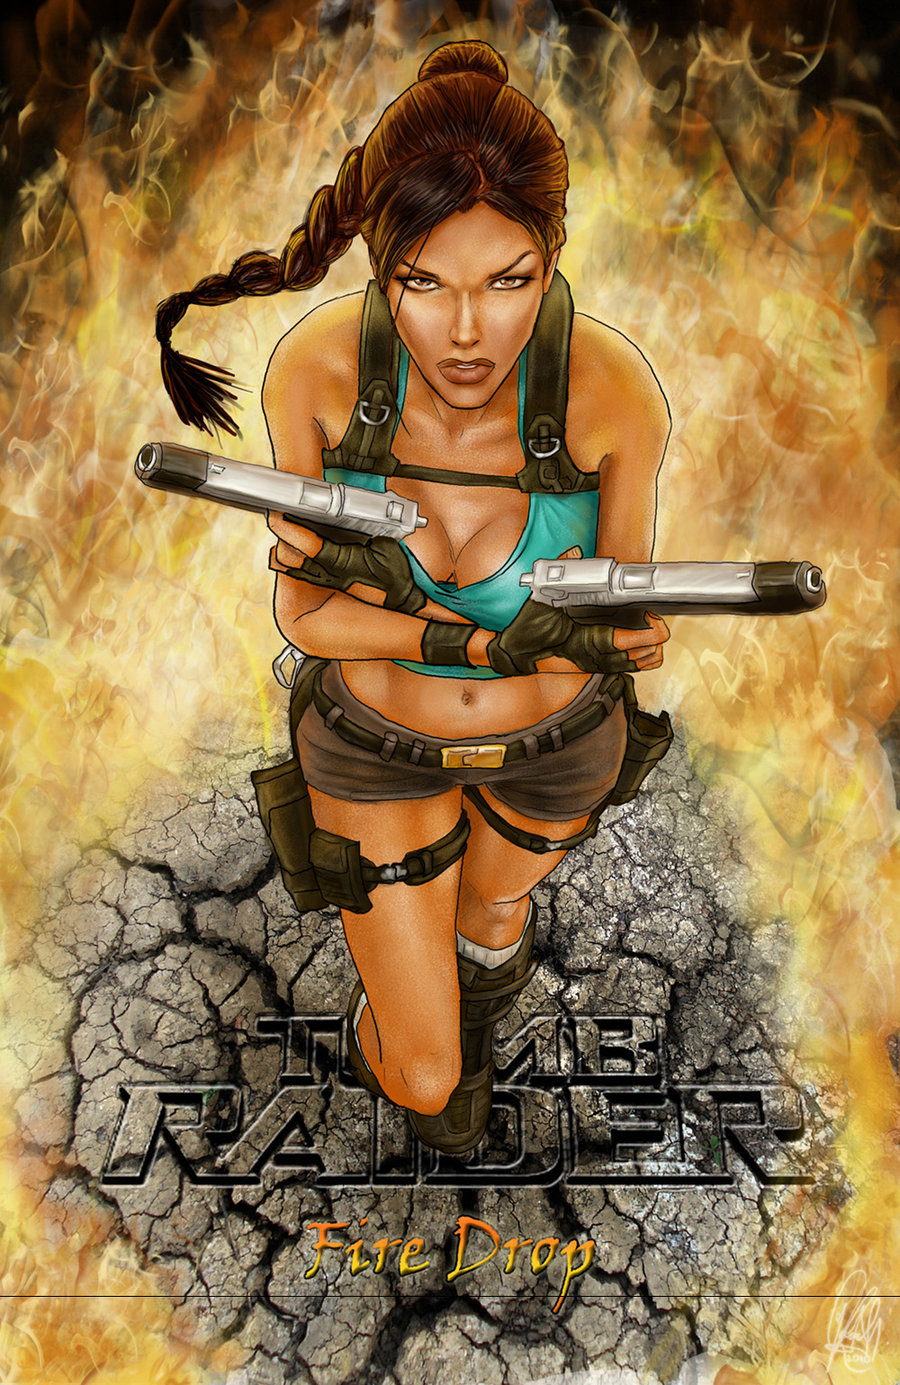 24 Hot Pictures Of Lara Croft - The Hottest Video Game